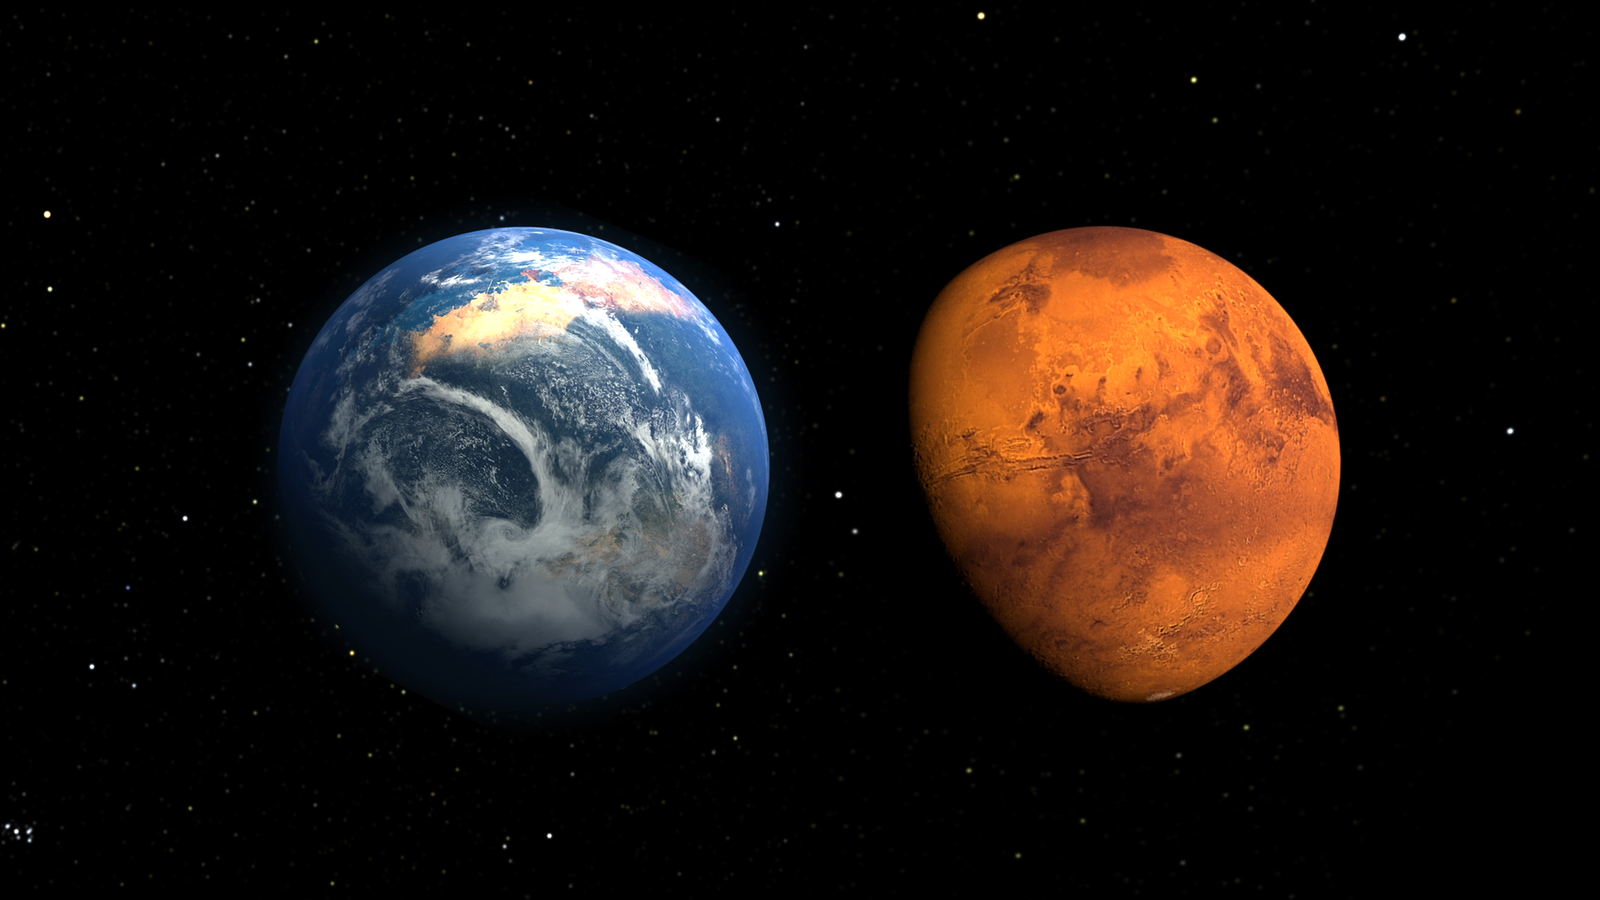 This artist's concept depicts the early Martian environment (left) - believed to contain liquid water and a thicker atmosphere - versus the cold, dry environment seen at Mars today (right).